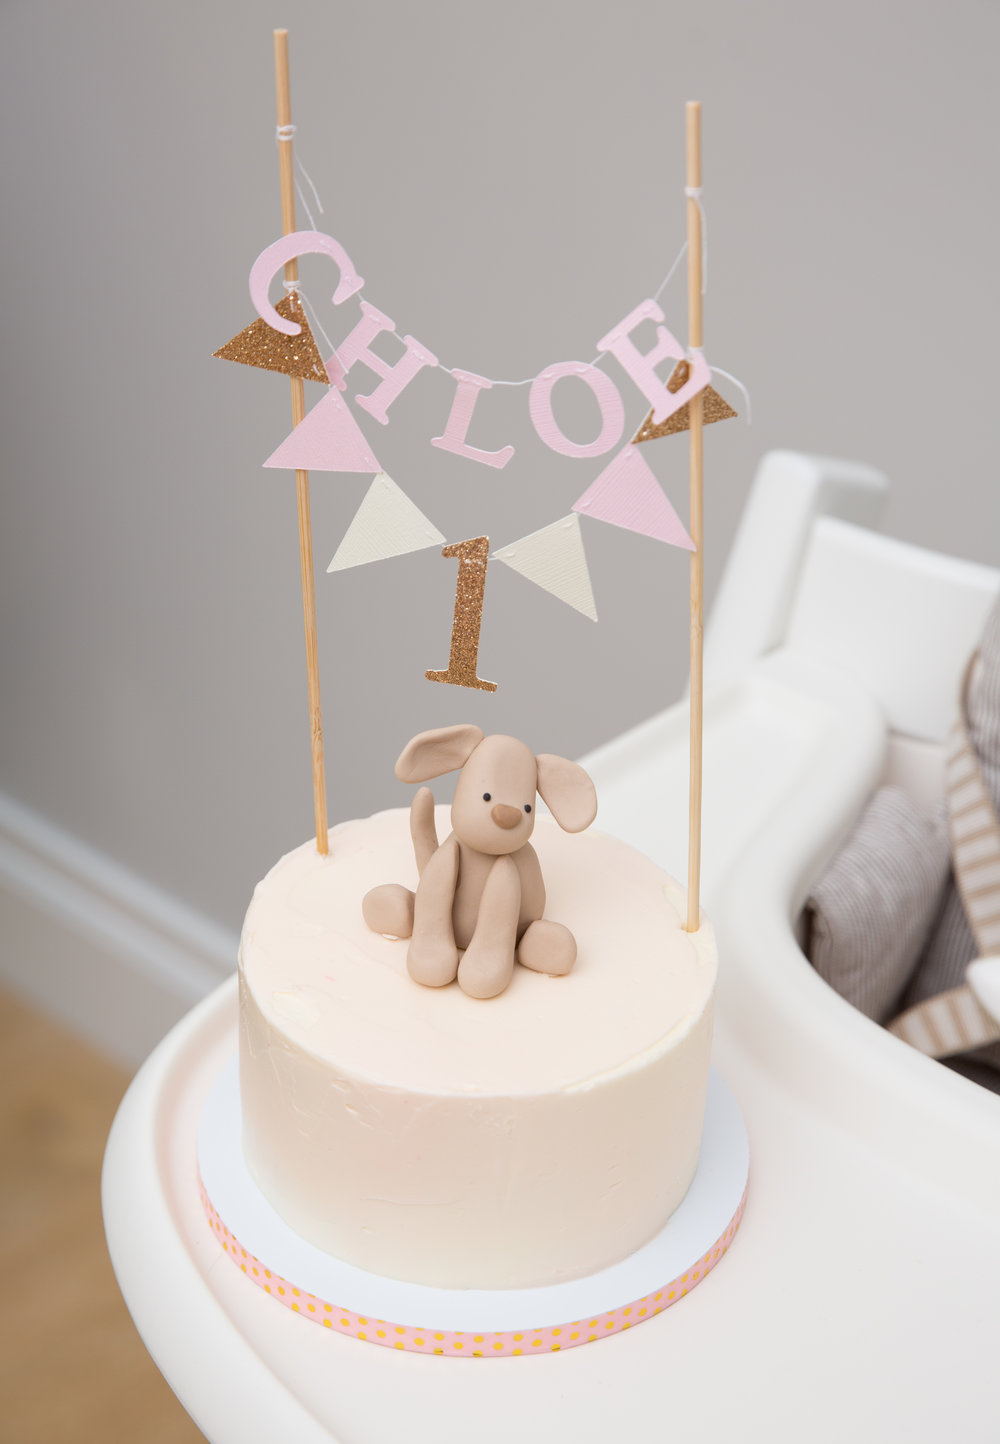 How cute is this puppy-themed cake? Betsy at  Nine Cakes  does it again!